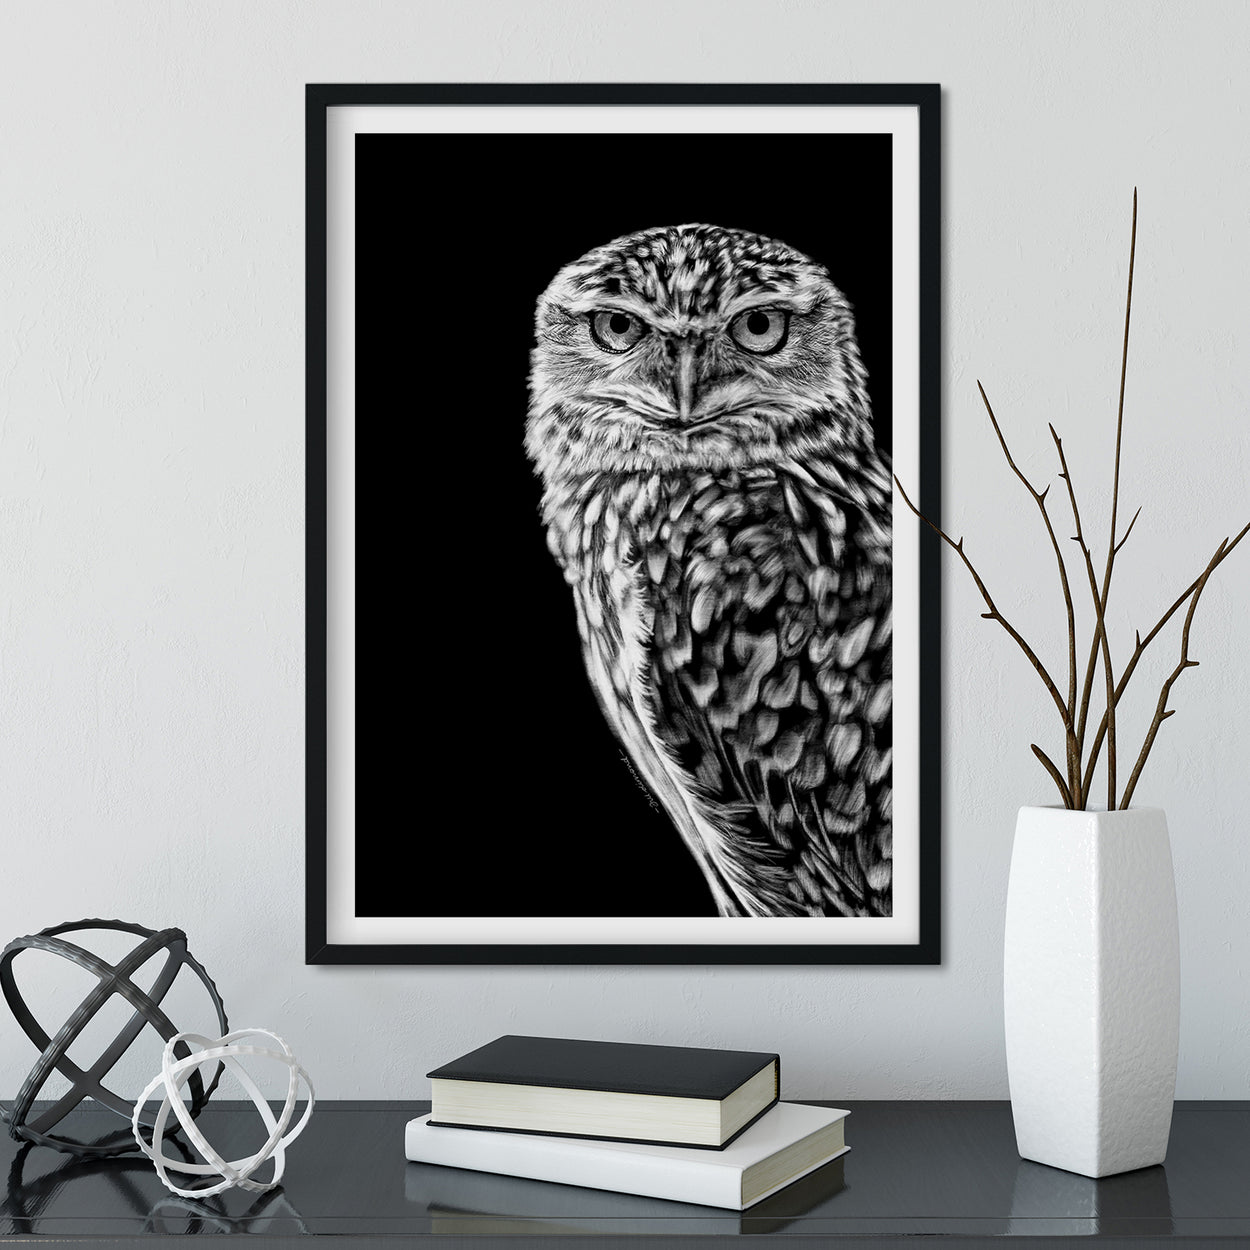 Burrowing Owl Wall Art Framed - The Thriving Wild